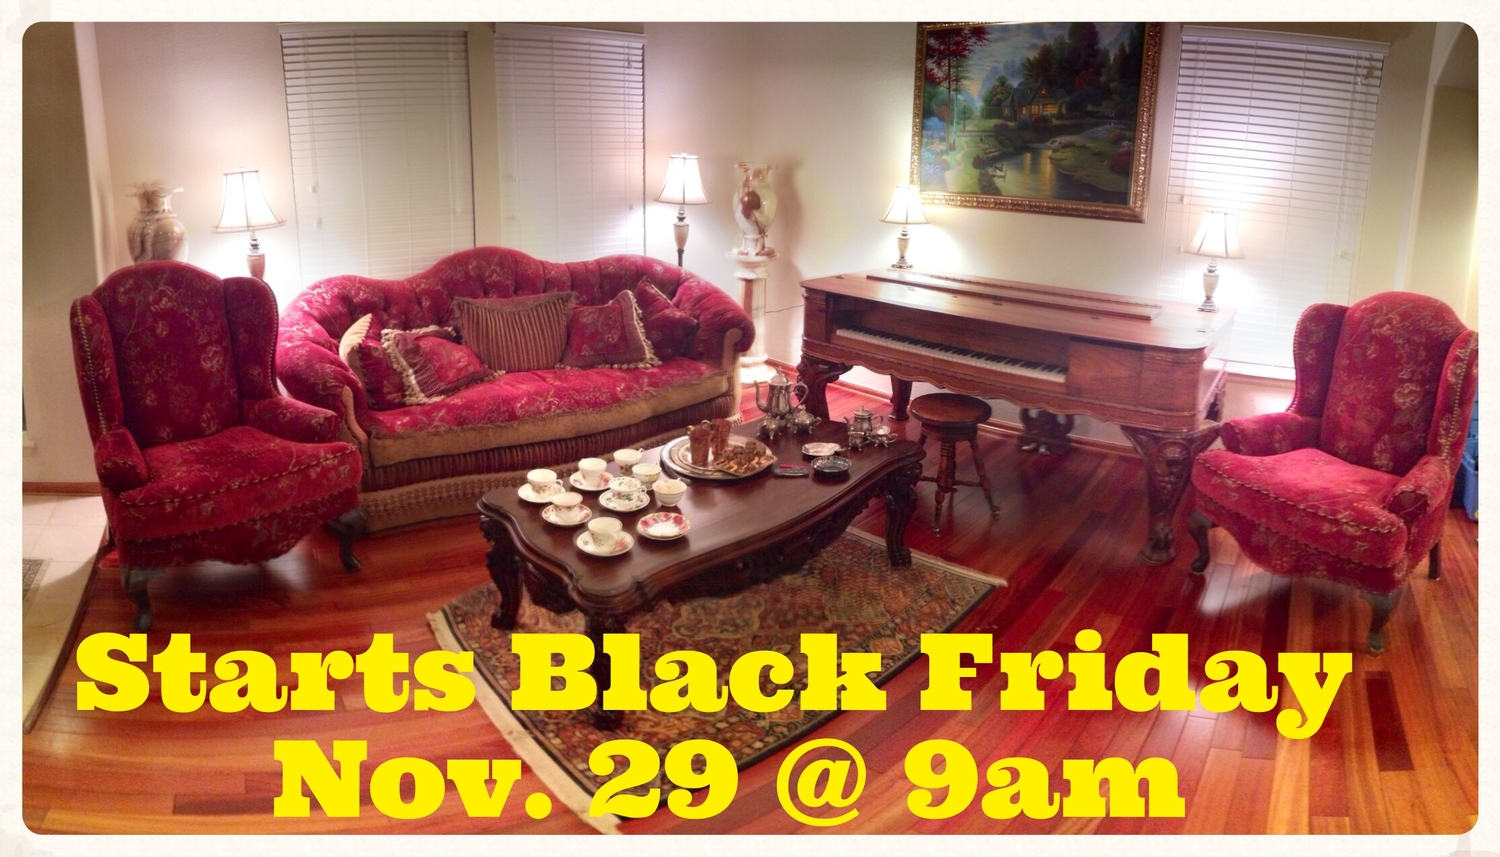 eclectic castle rock sale great for holiday gifts